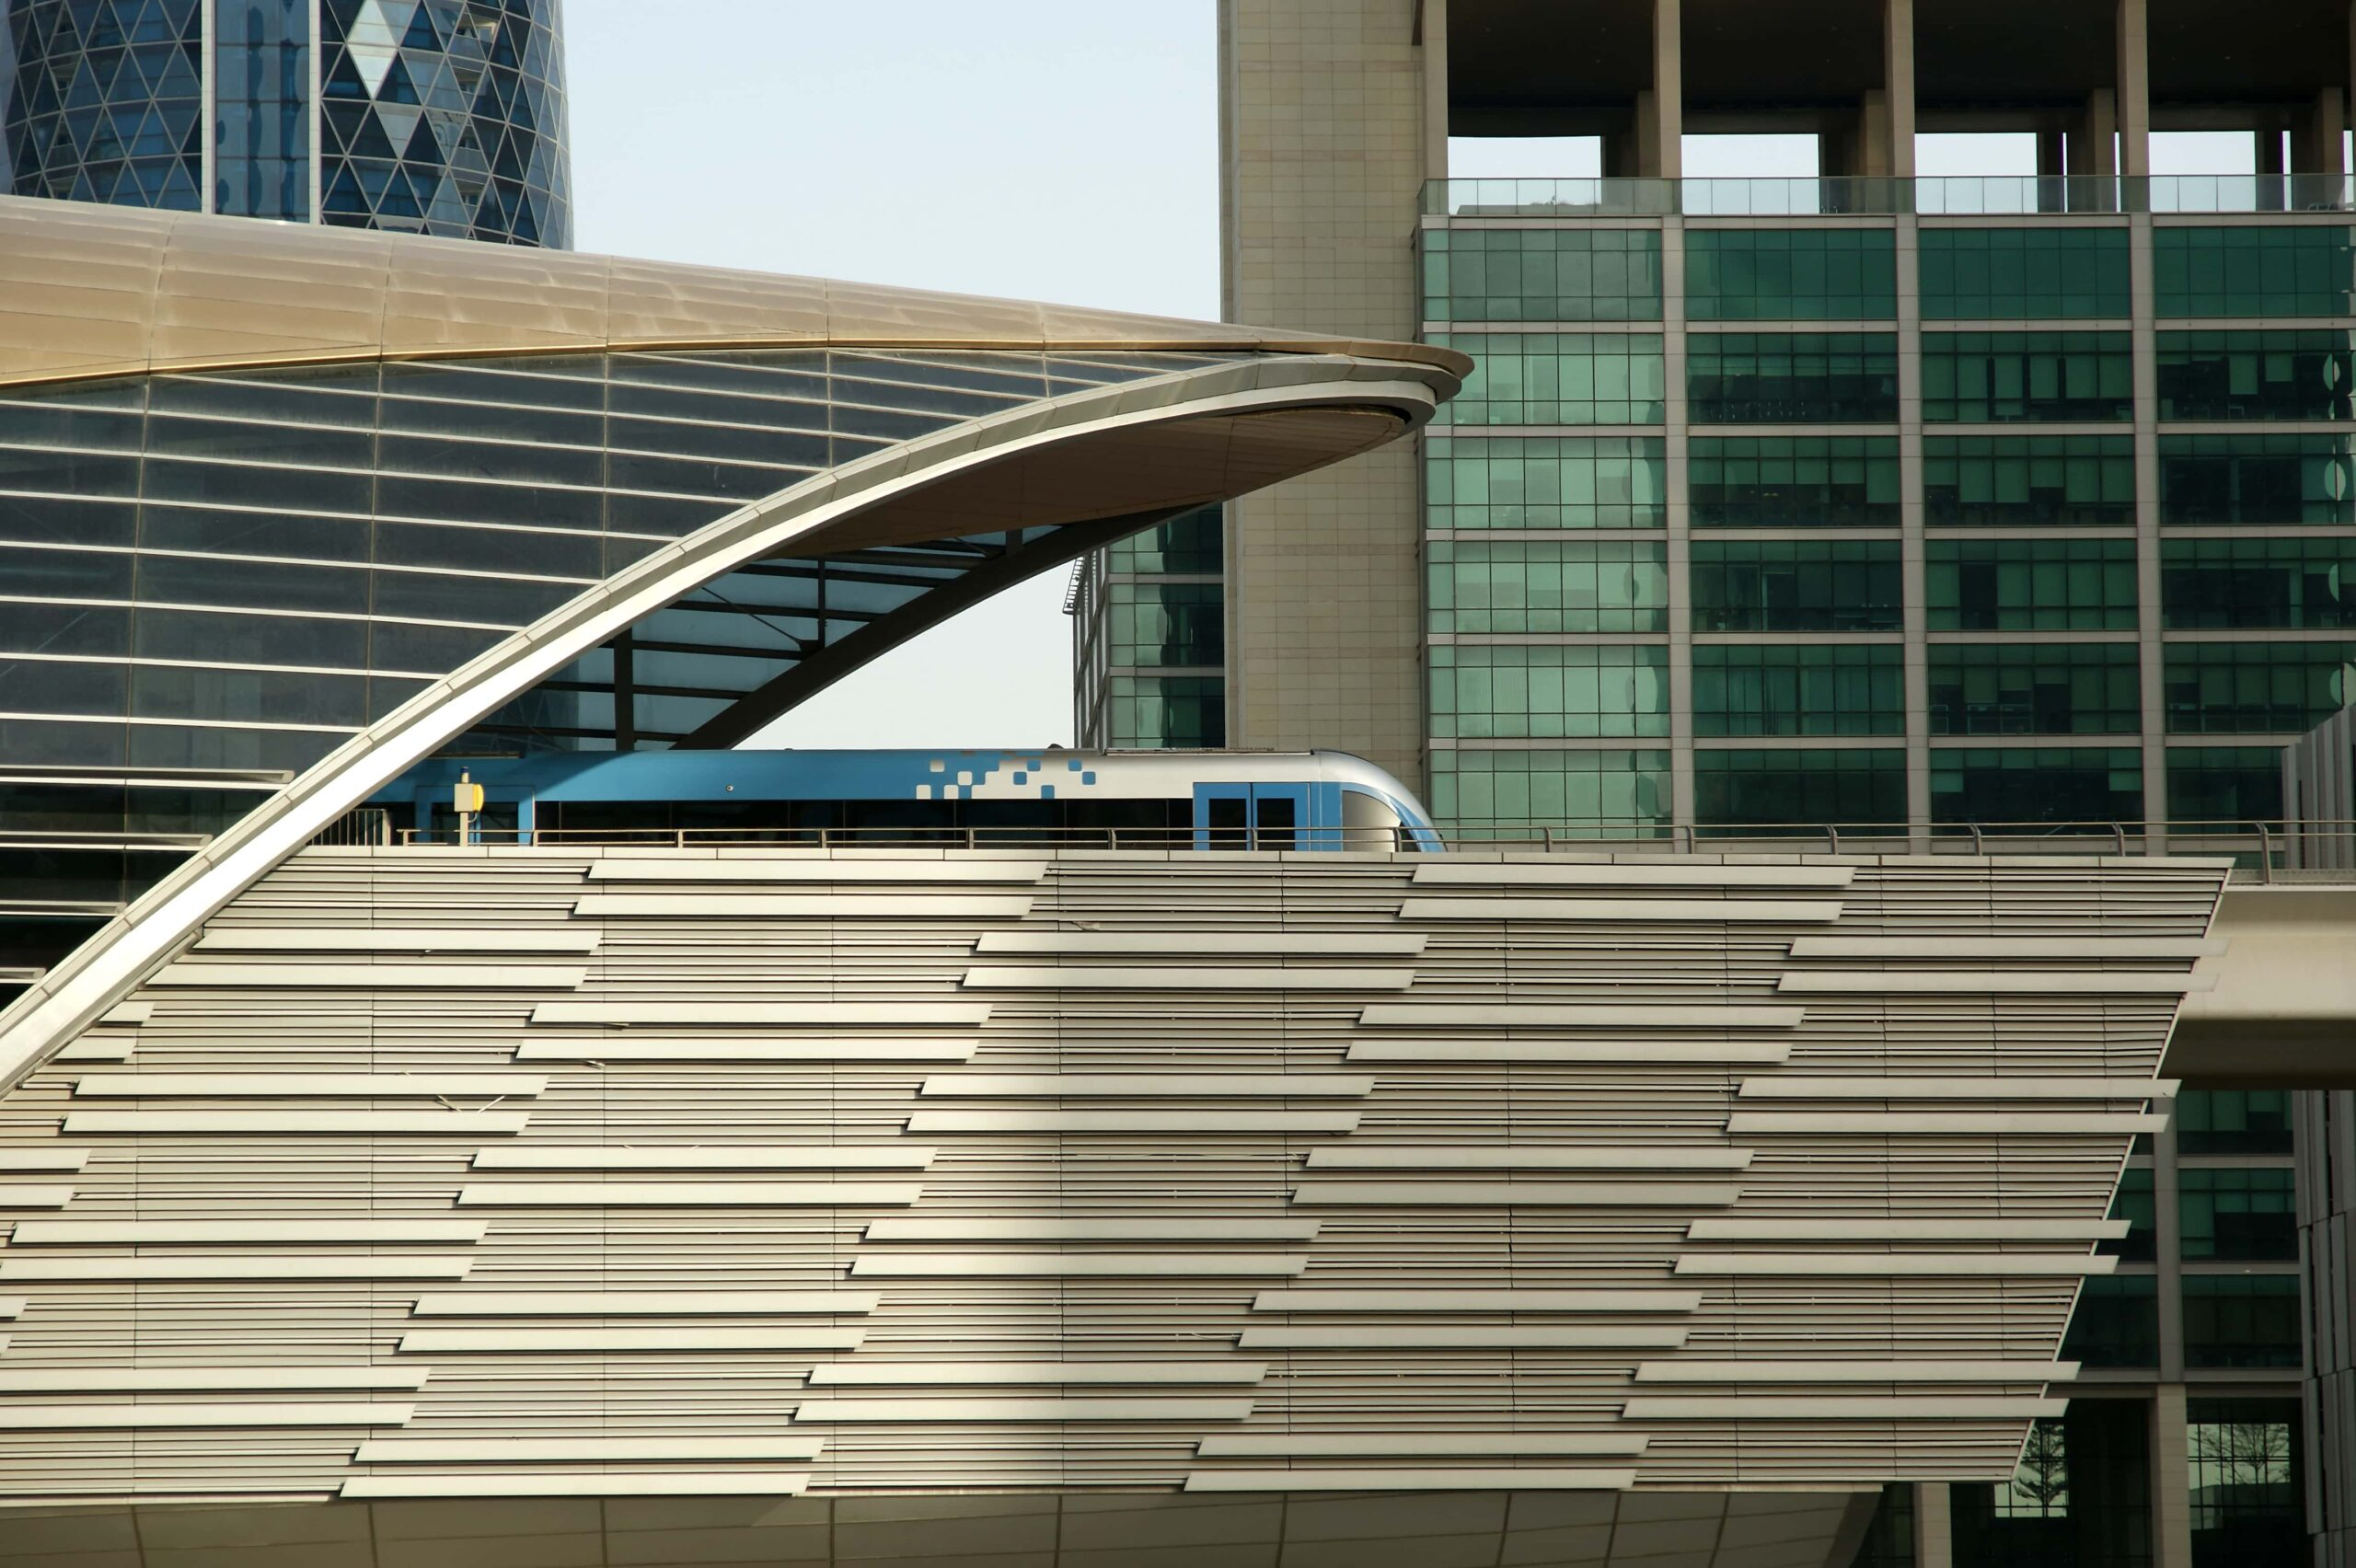 Dubai Metro station with a car leaving